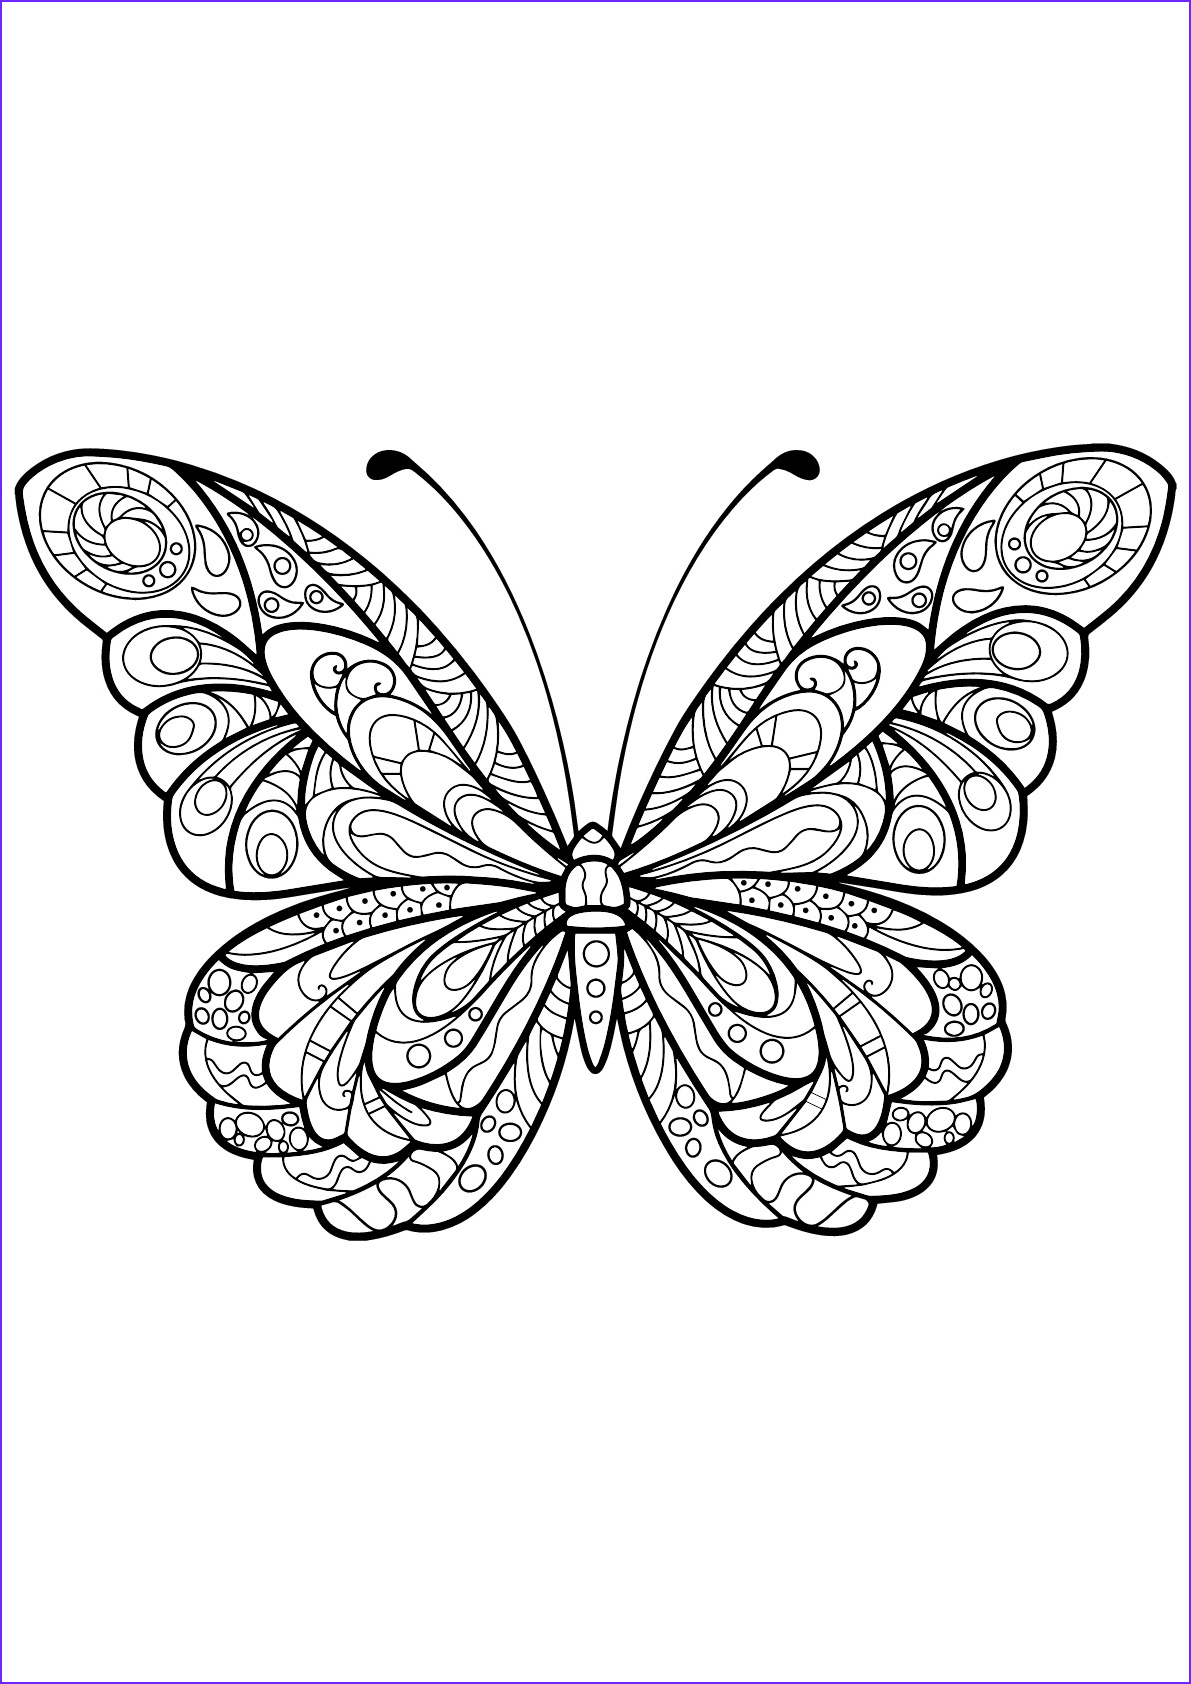 Butterfly Coloring Book for Adults New Stock butterfly Beautiful Patterns 5 butterflies & Insects